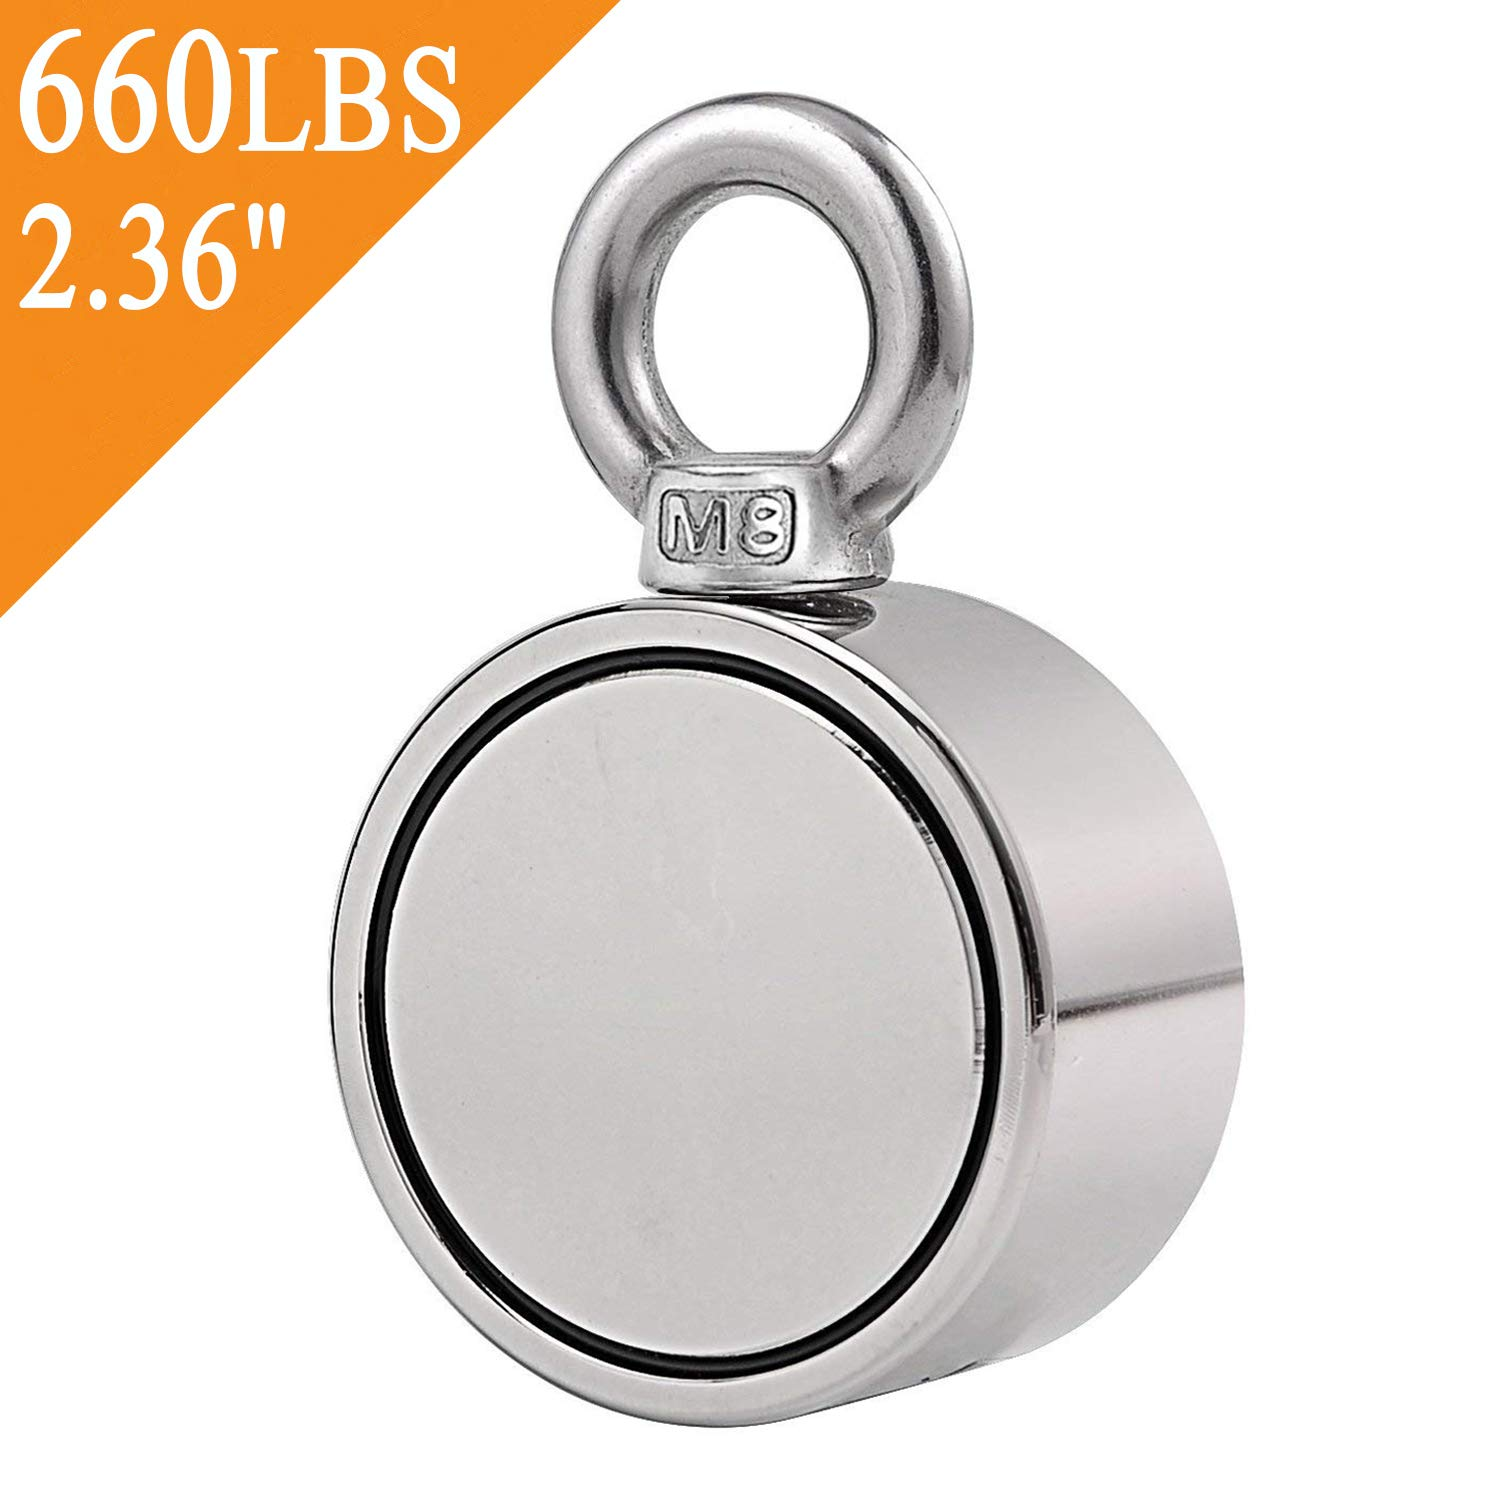 Uolor Double Side Round Neodymium Fishing Magnet, Combined 660 LBS Pulling Force Ultra Strong Neodymium Magnet with Eyebolt for Magnet Fishing and Retrieving in River - 2.36'' Diameter